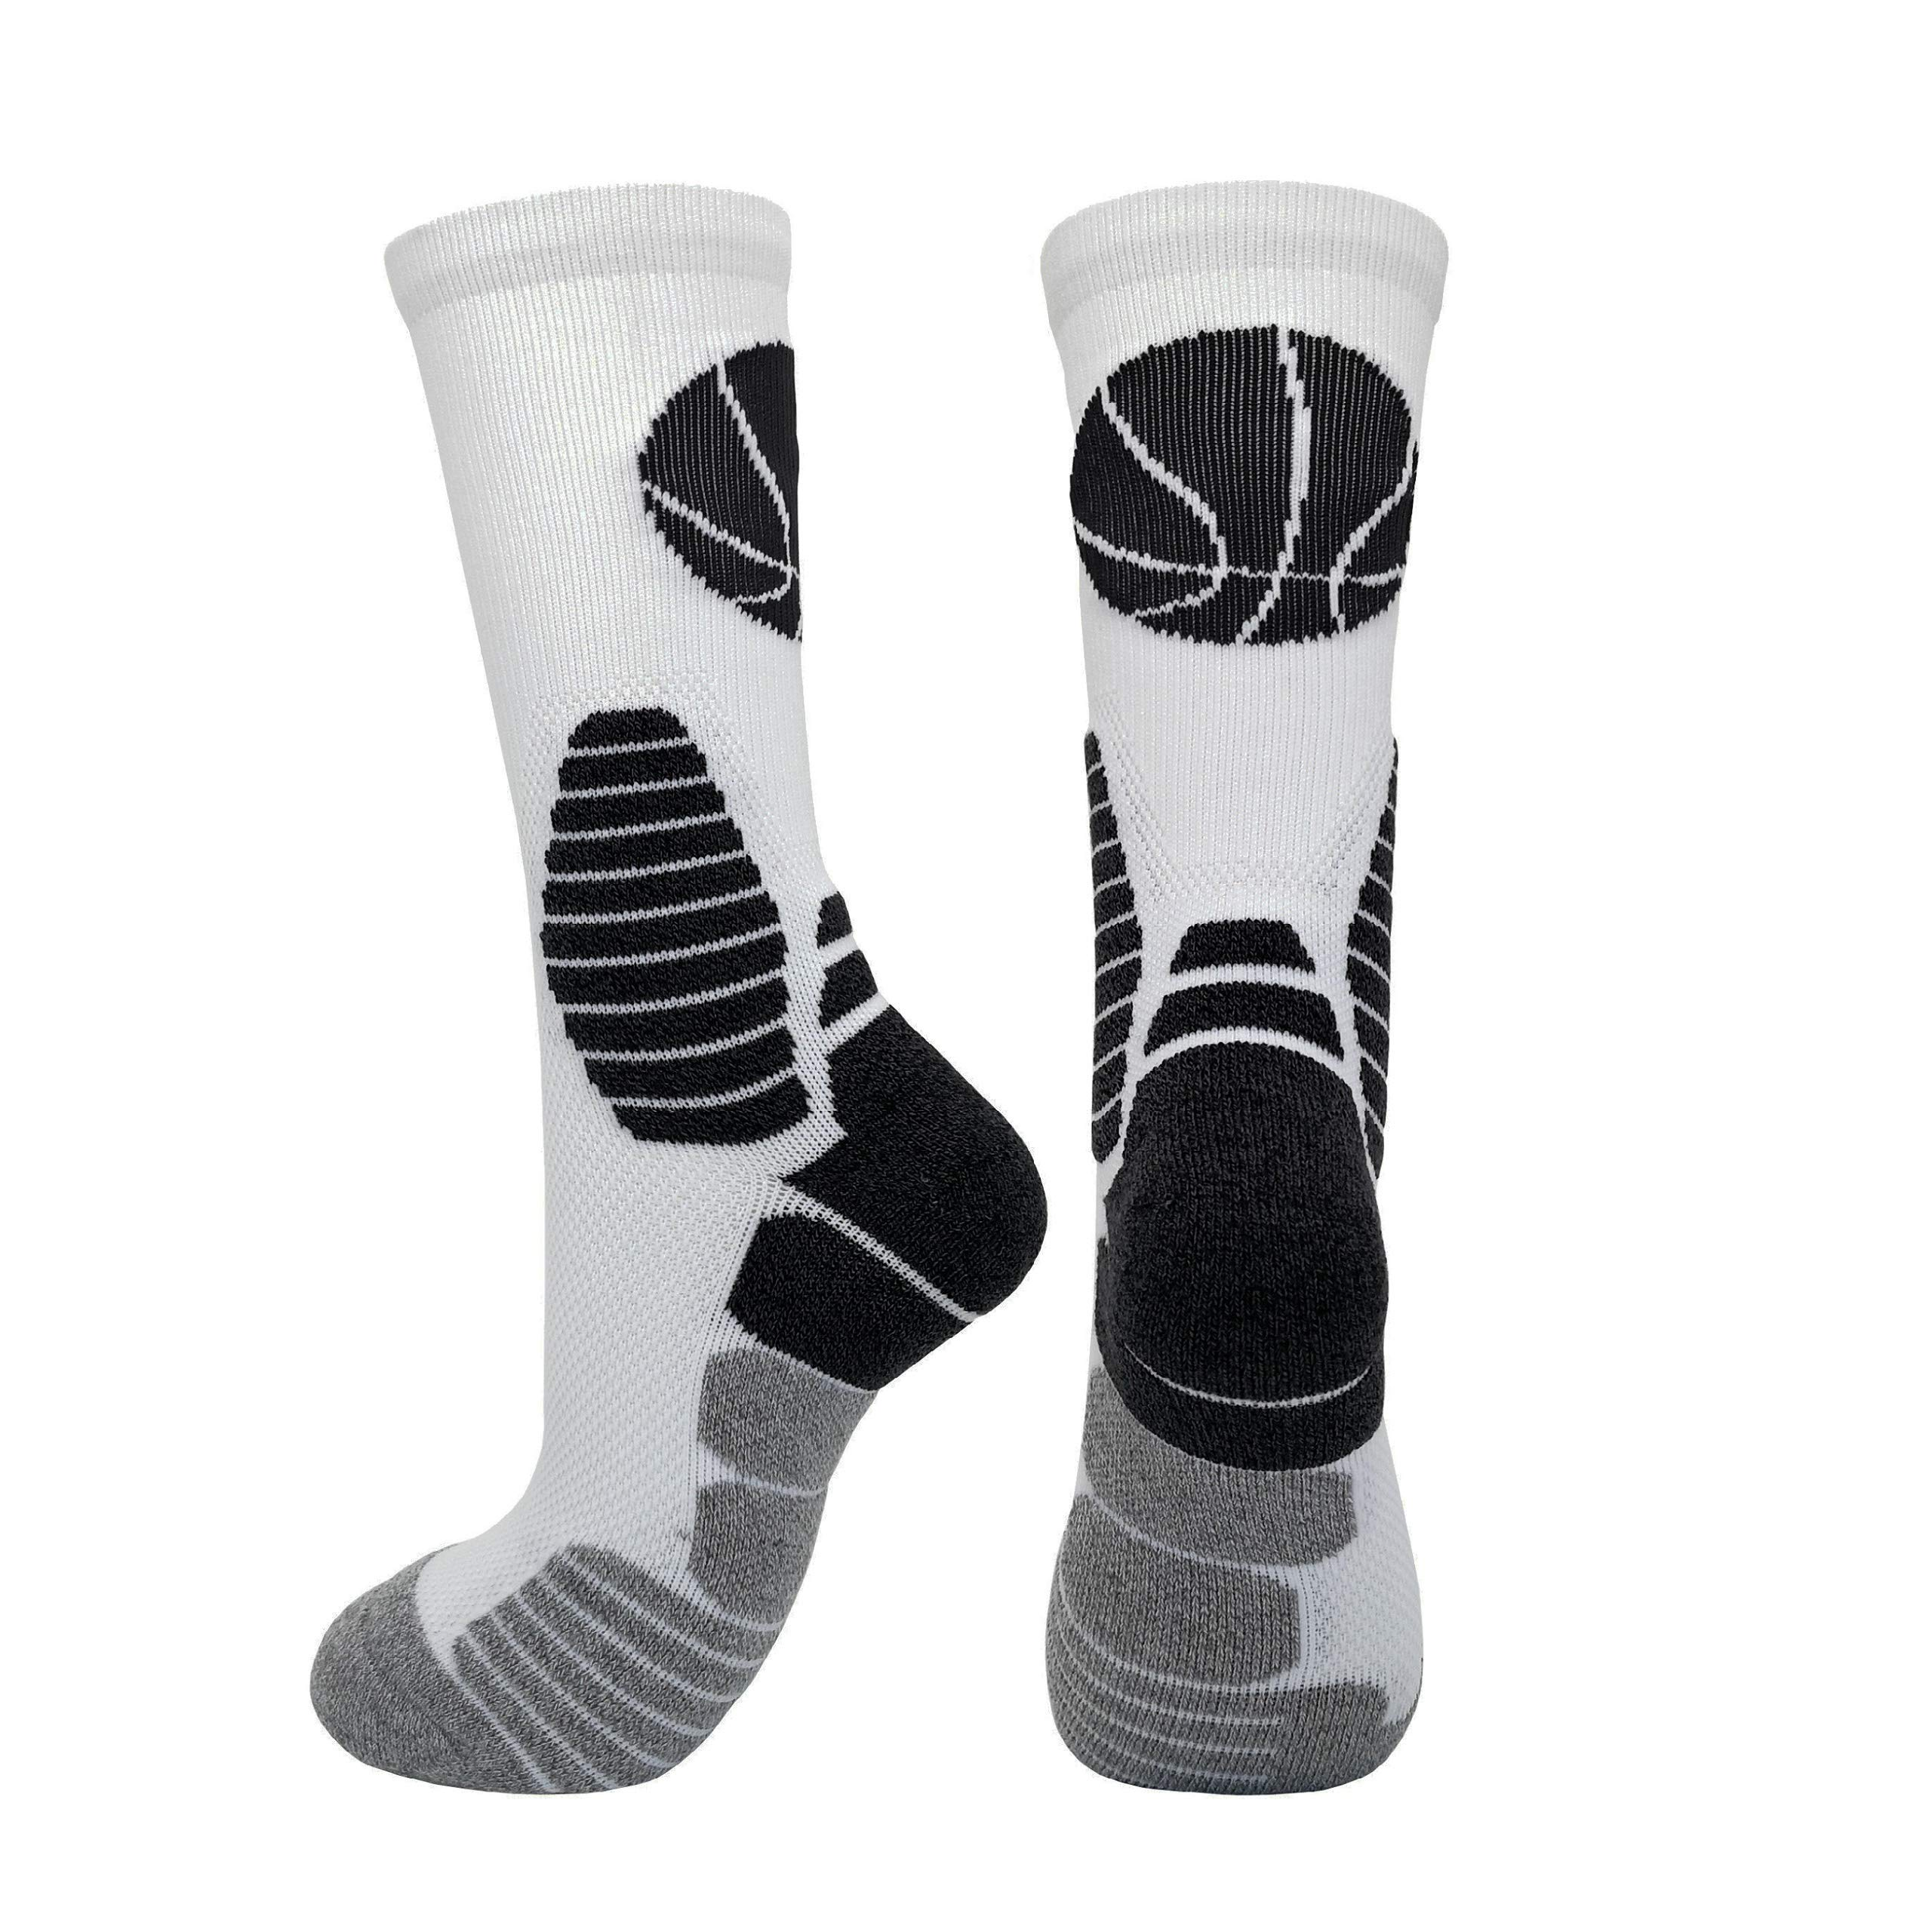 2 Pairs PK Elite Basketball Socks Dri-Fit Crew Sports Athletic Socks for Boy Girl Men Women (White/Grey X 2PK, L) by HIGHCAMP